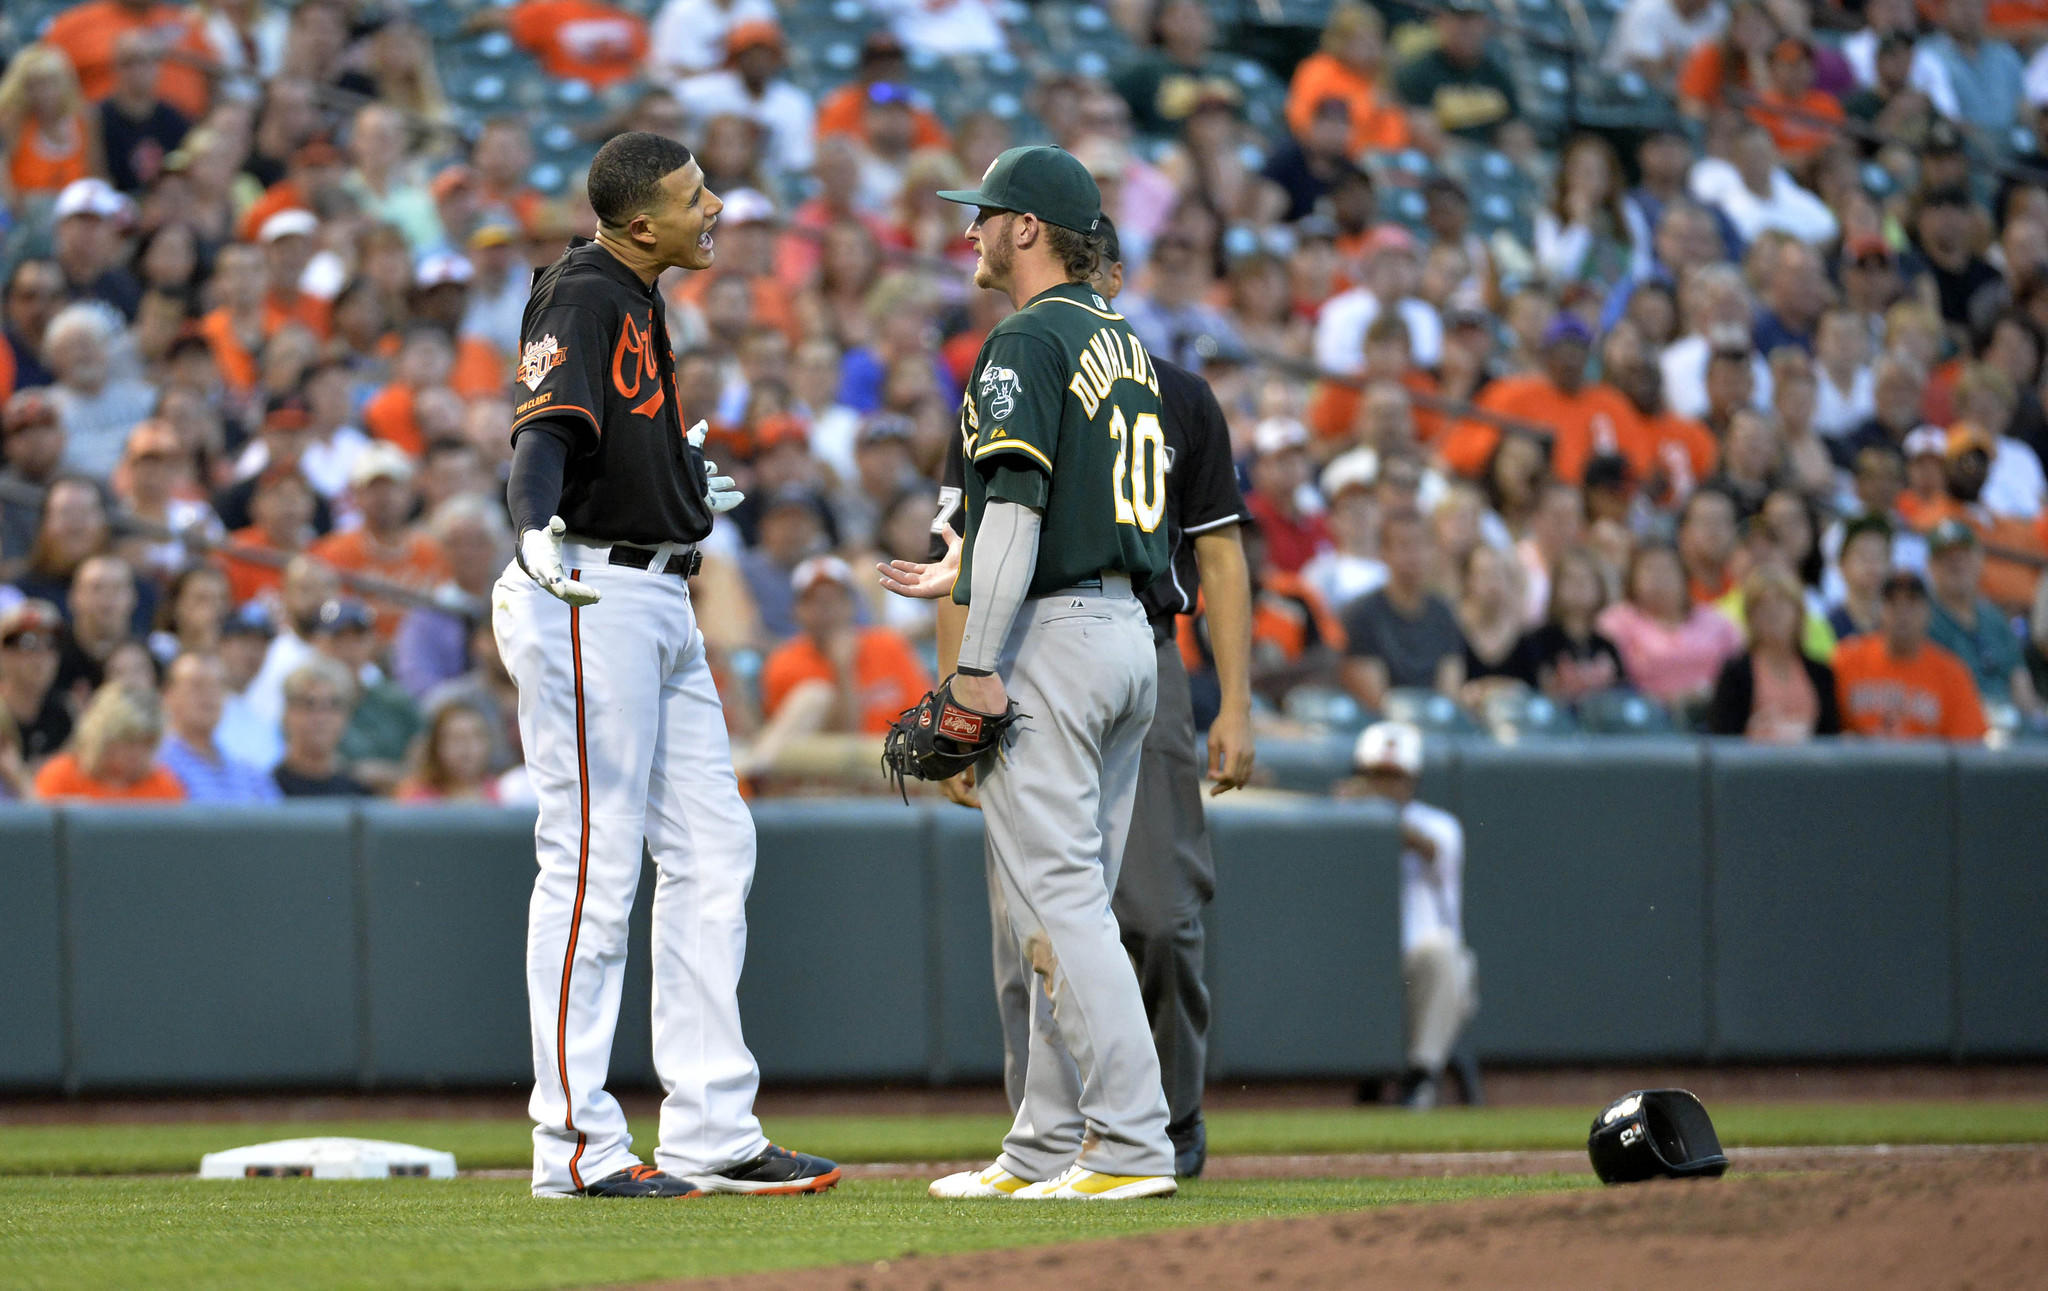 Manny Machado argues with Oakland's Josh Donaldson after being tagged out in the third inning.